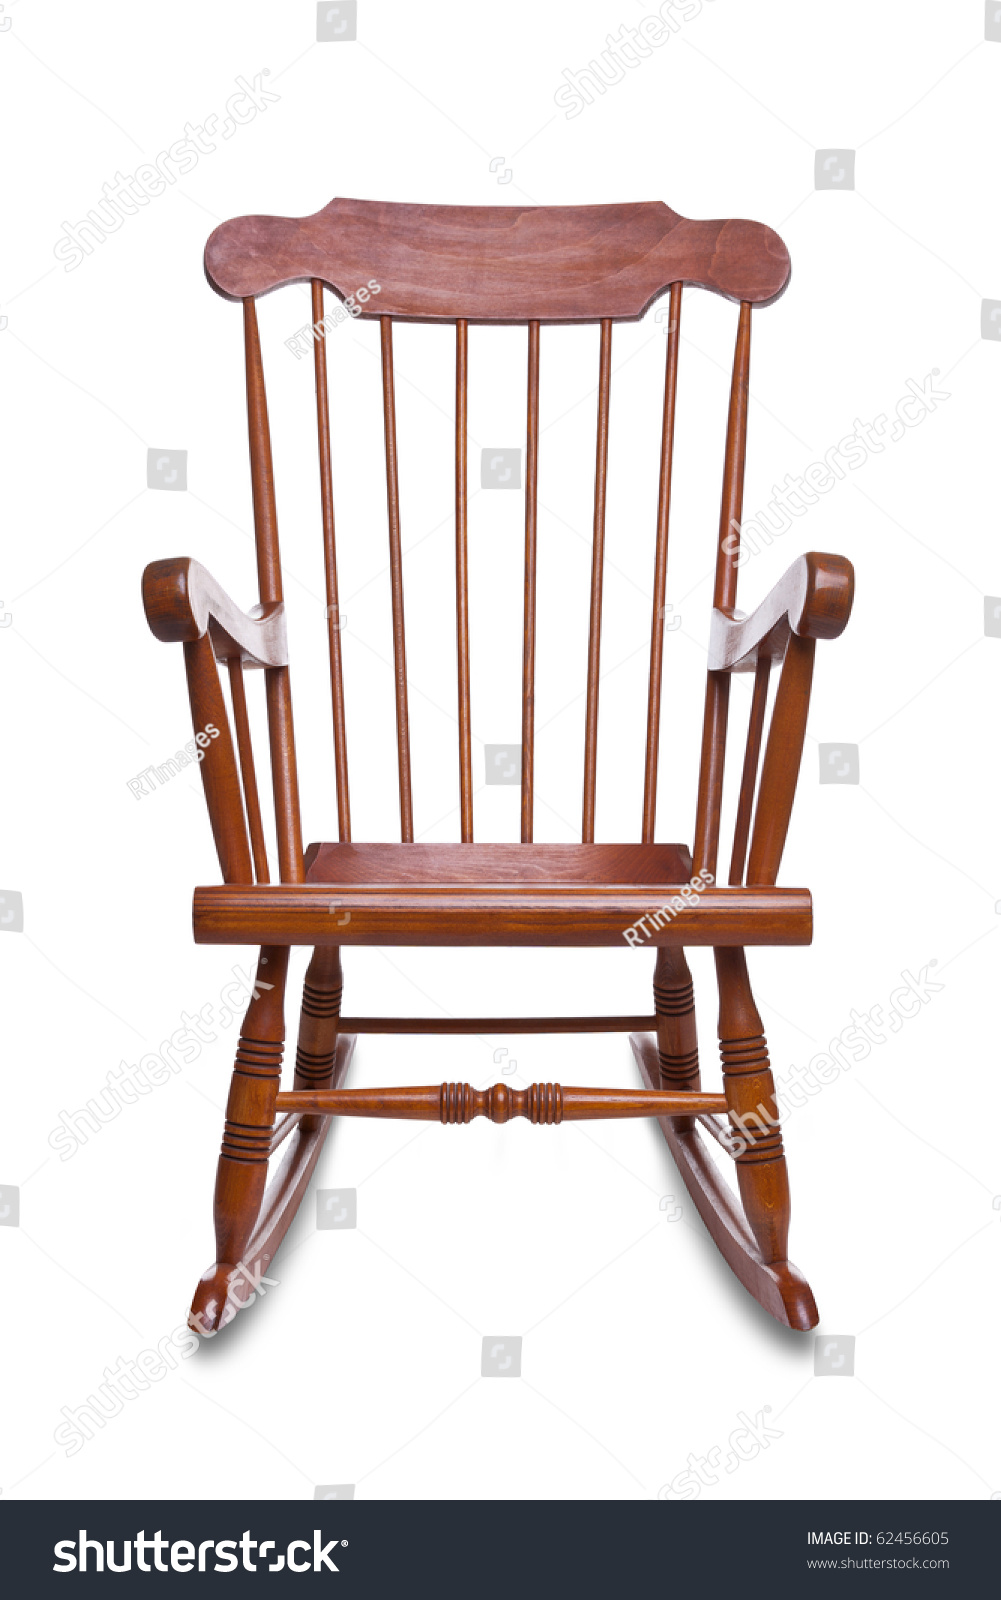 Wooden Rocking Chair Isolated On A White Background With